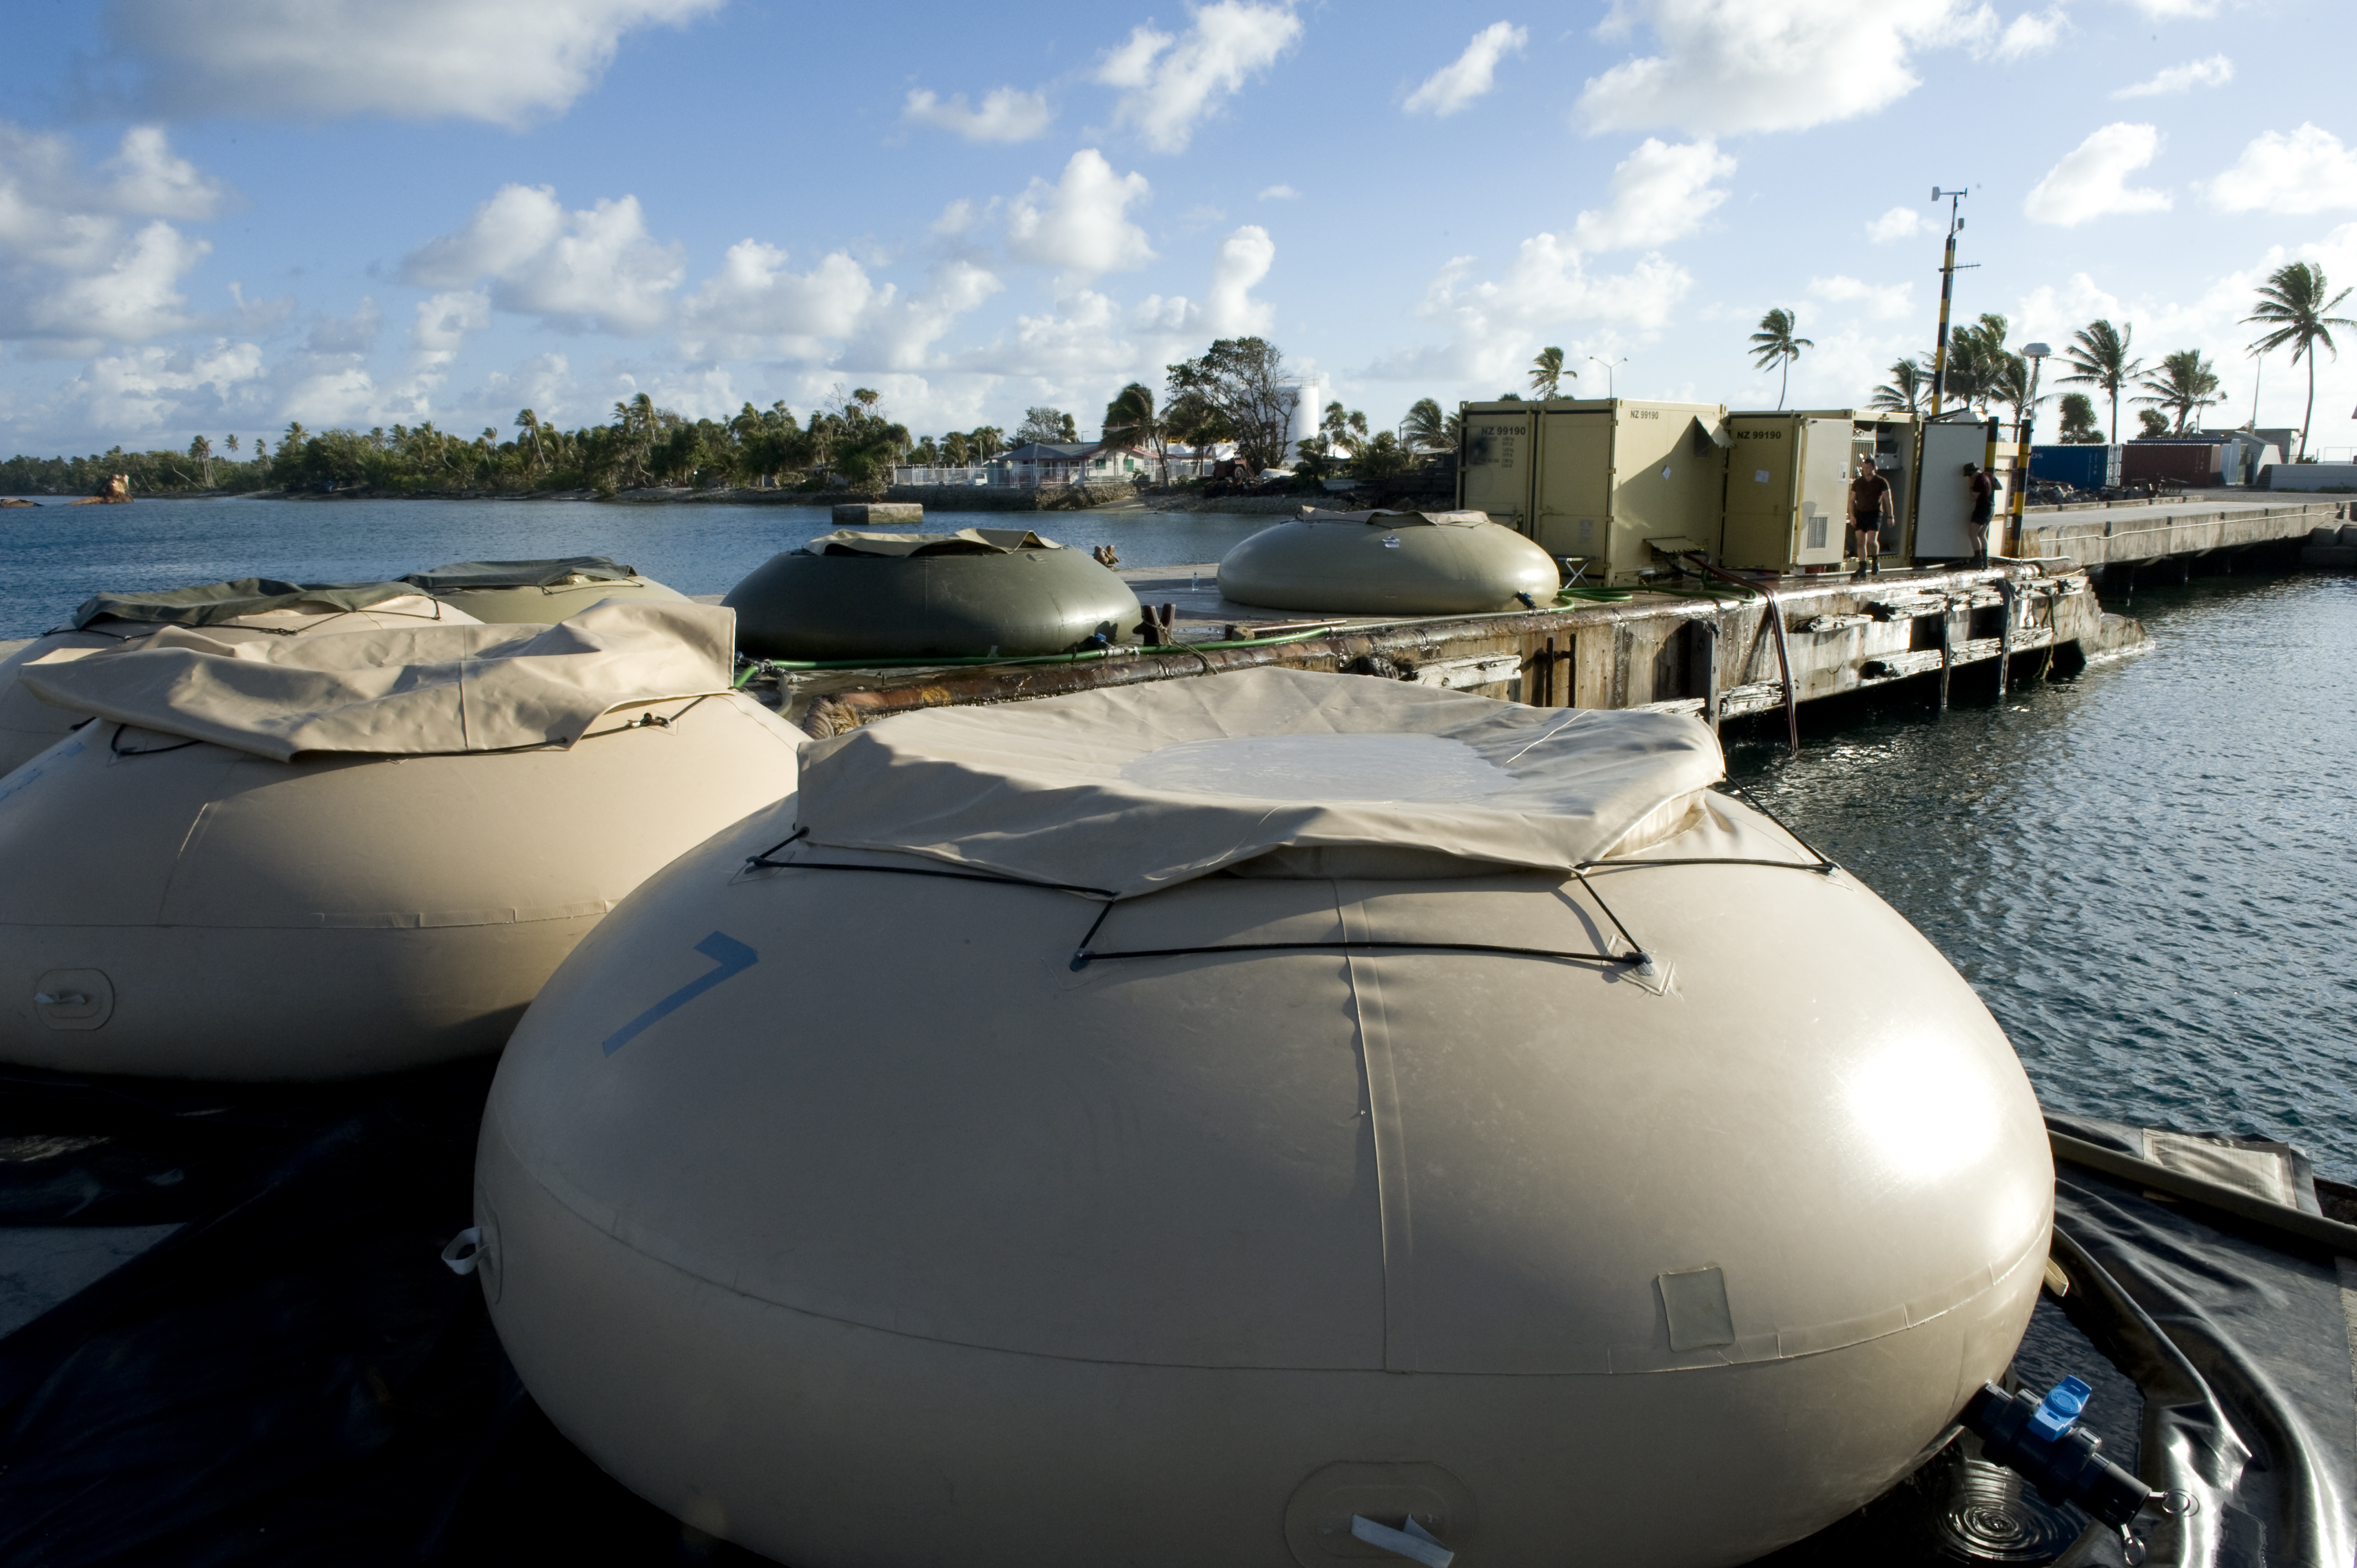 Portable desalination plants provided by New Zealand helped to create water and reduce the impact of the drought on Tuvalu. Photo by the New Zealand Defence Force